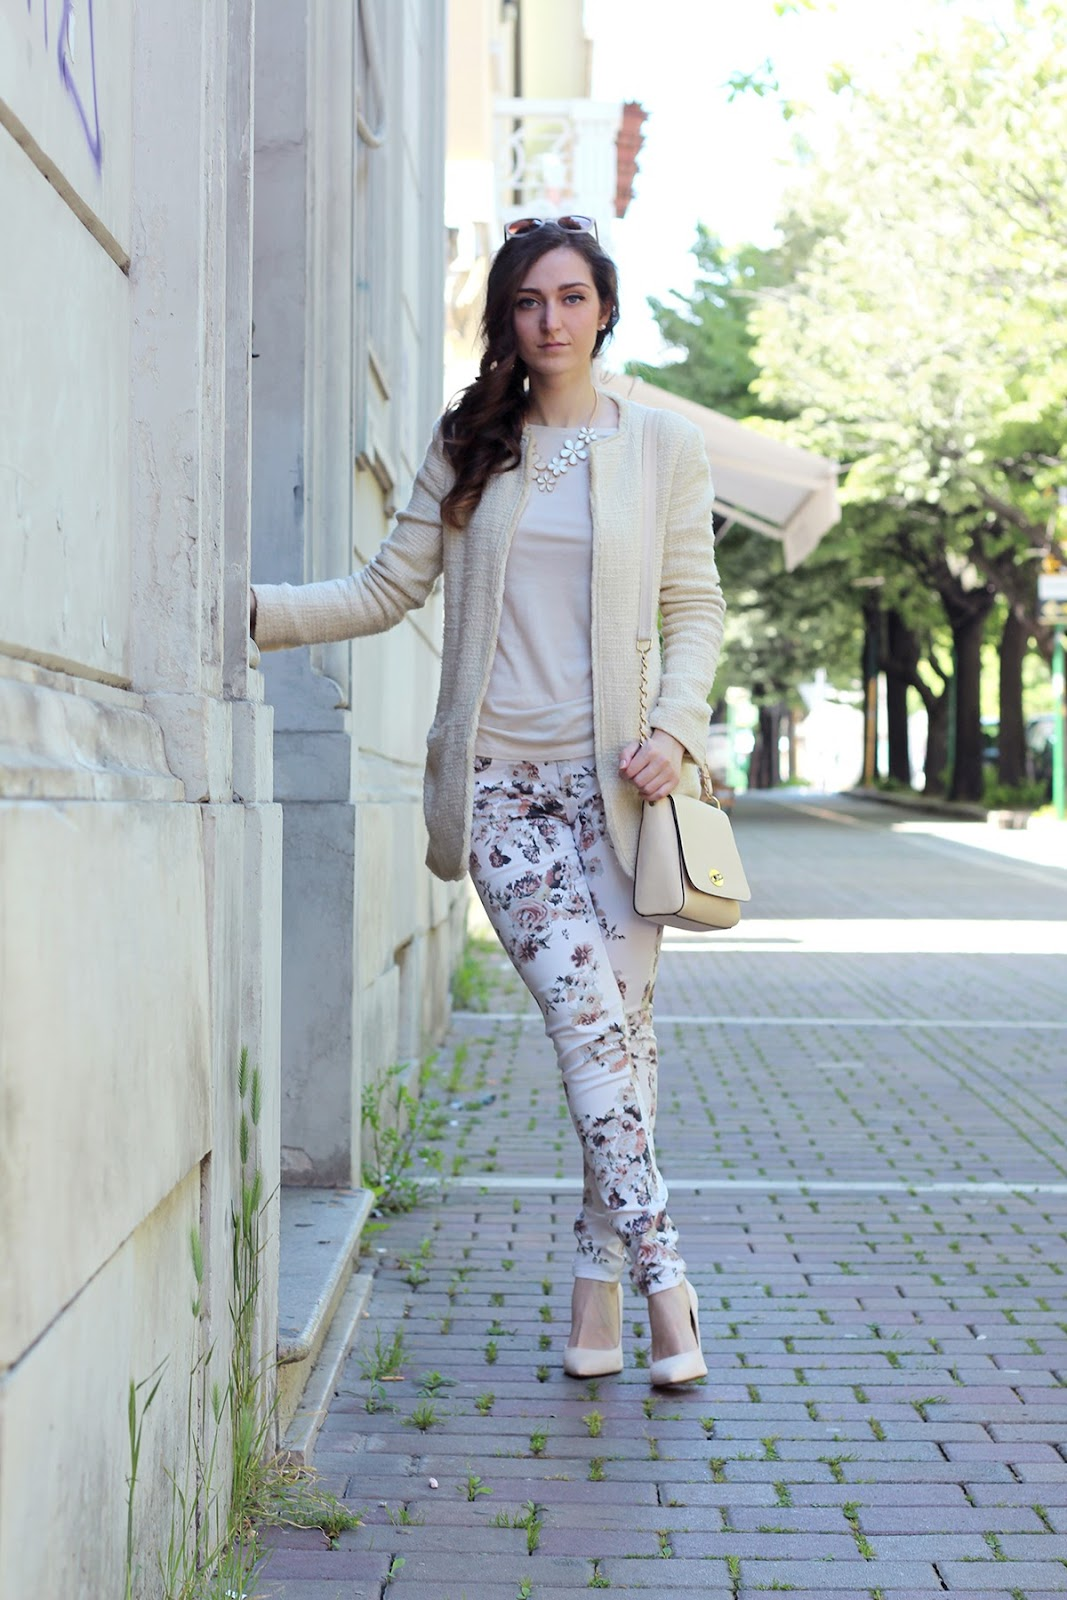 fashion style blogger outfit ootd italian girl italy trend vogue glamour pescara color block cream flowers bijou brigitte bijoux necklace collana sunglasses bag borsa occhiali sole calliope shoes heels nude scarpe tacco bershka ovs ovine coat cappotto spring primavera